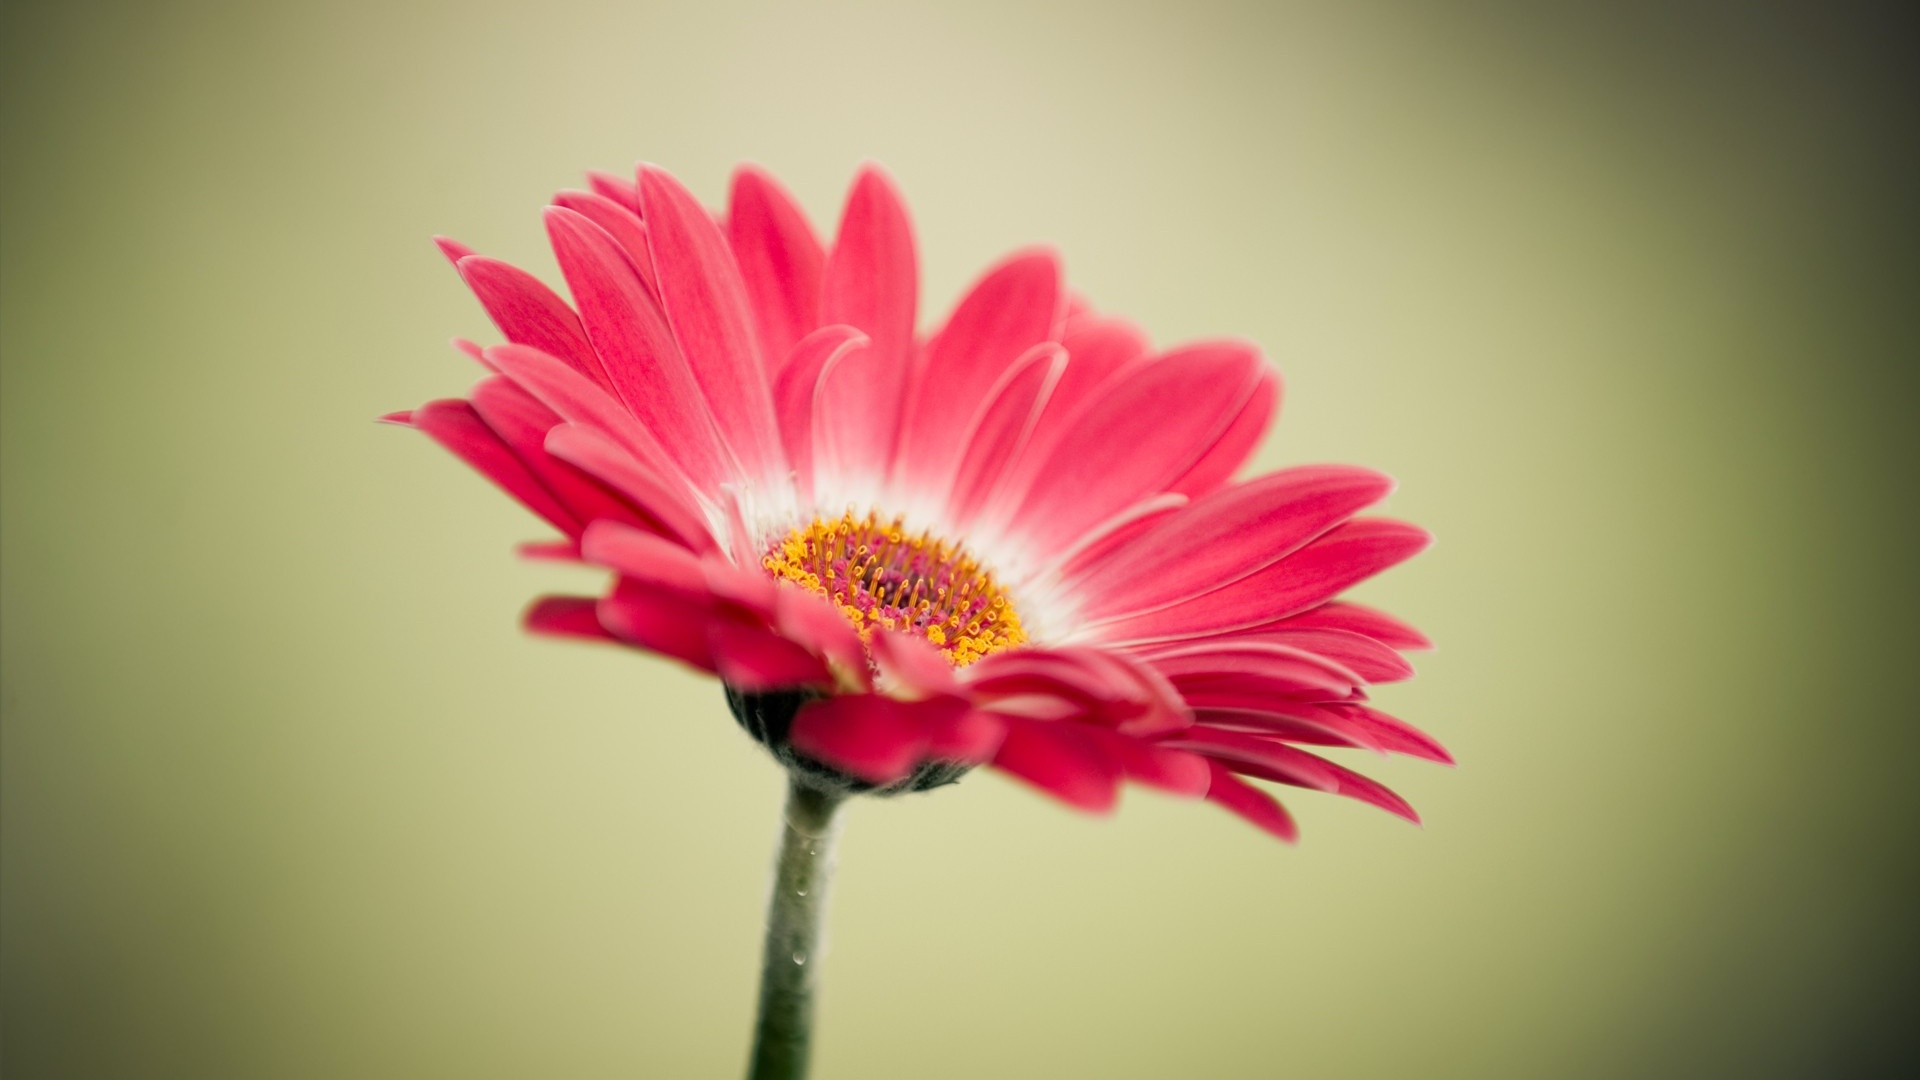 flowers wallpapers for free